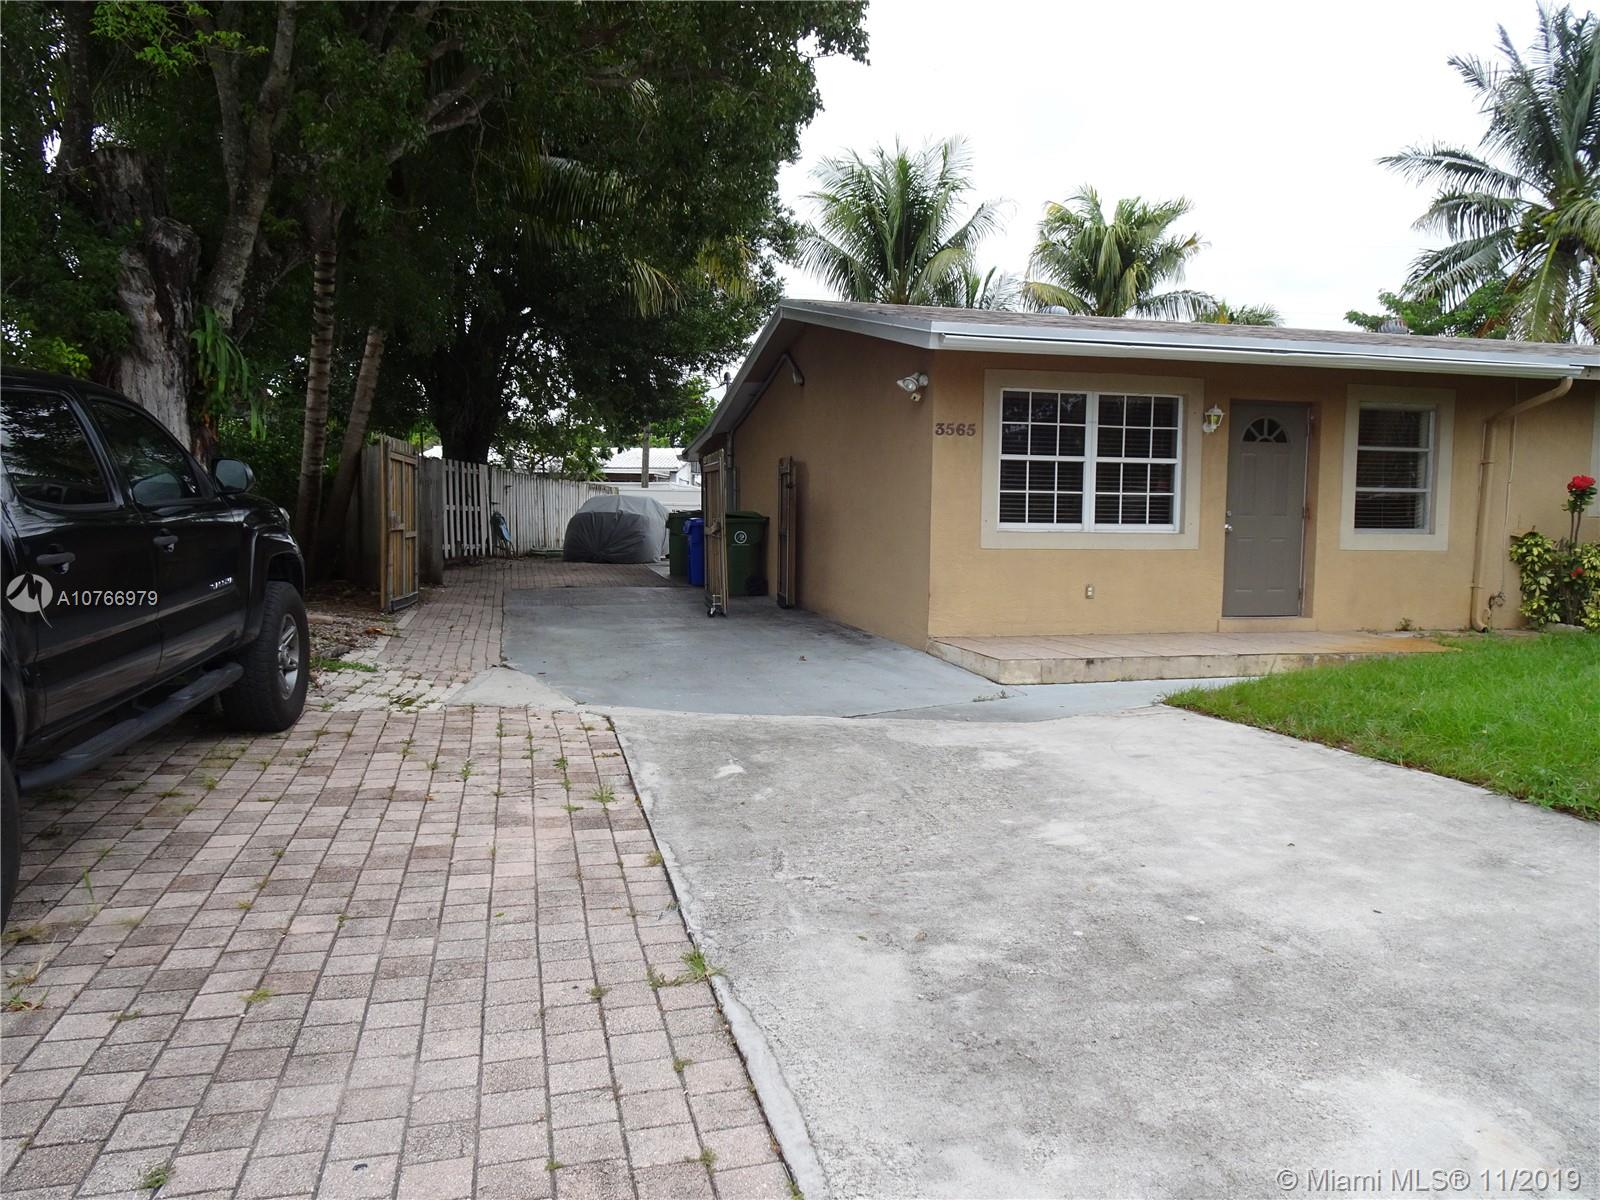 3565 S W 16th St  For Sale A10766979, FL